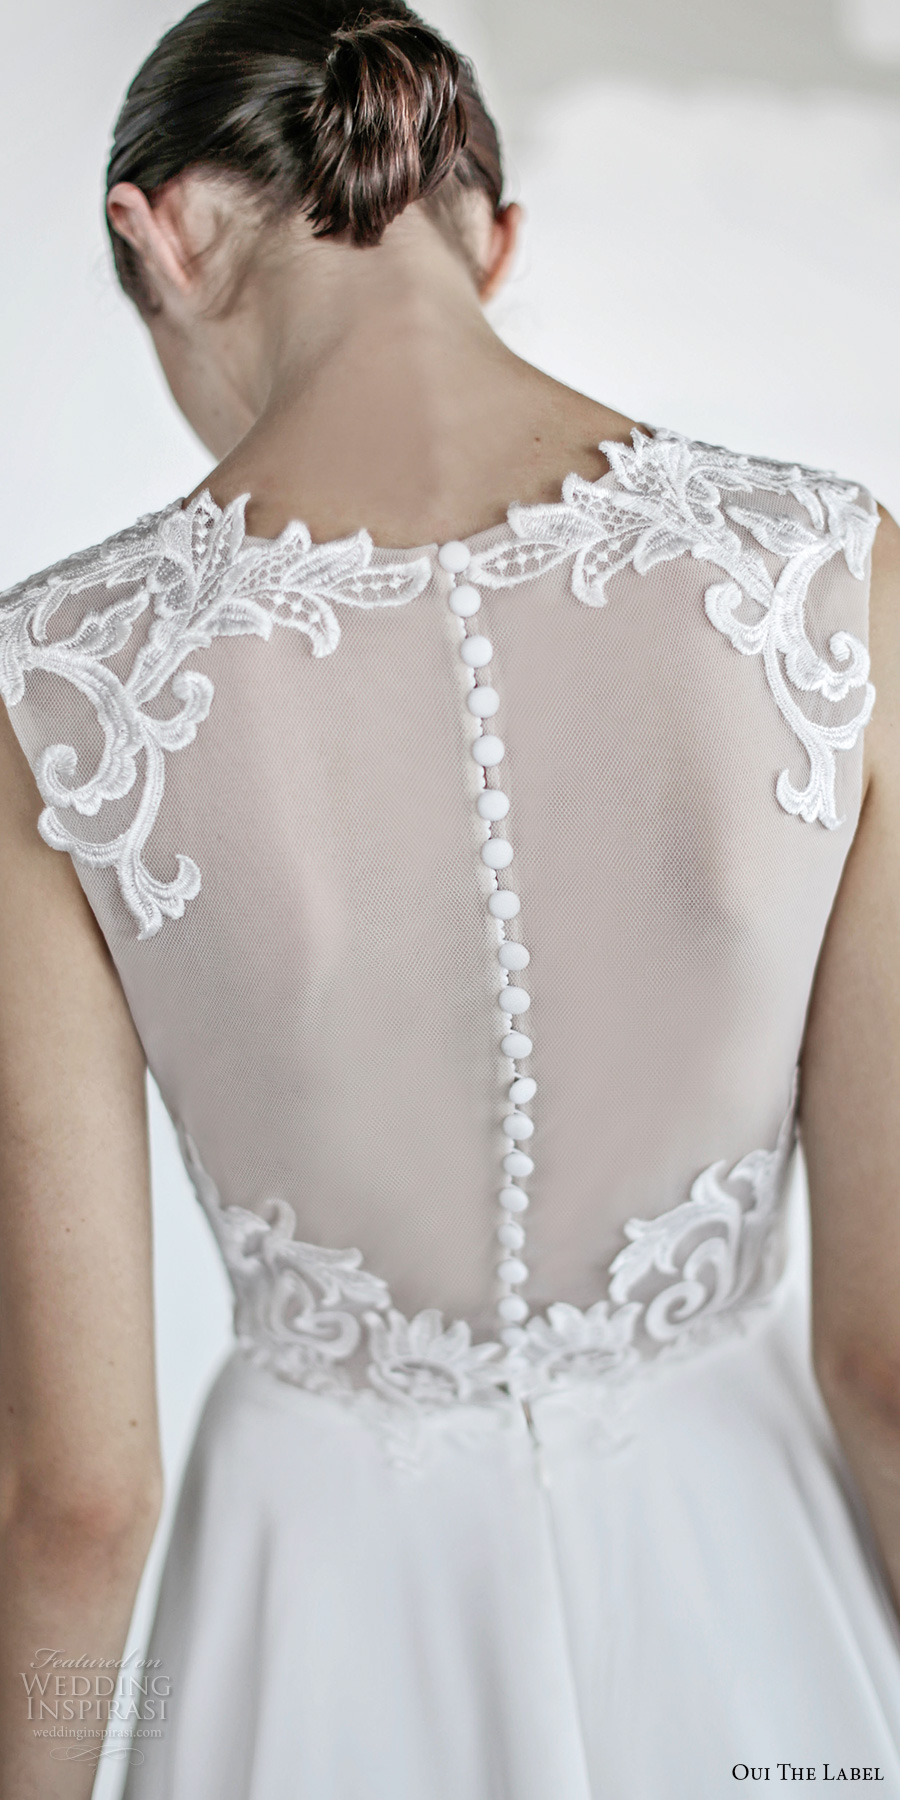 oui the label 2017 bridal sleeveless jewel neck sheer heavily embellished bodice romantic above the knee short wedding dress with pockets sheer back (6) zbv